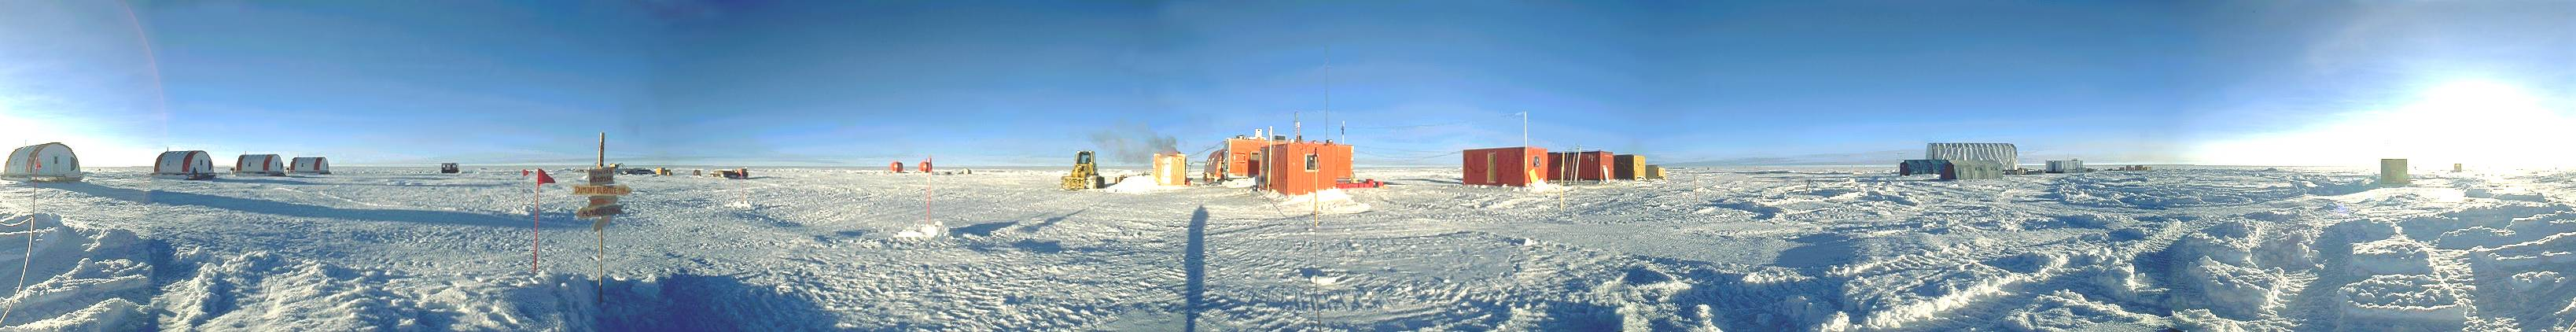 Panorama from Dome C, Antarctica, 1997